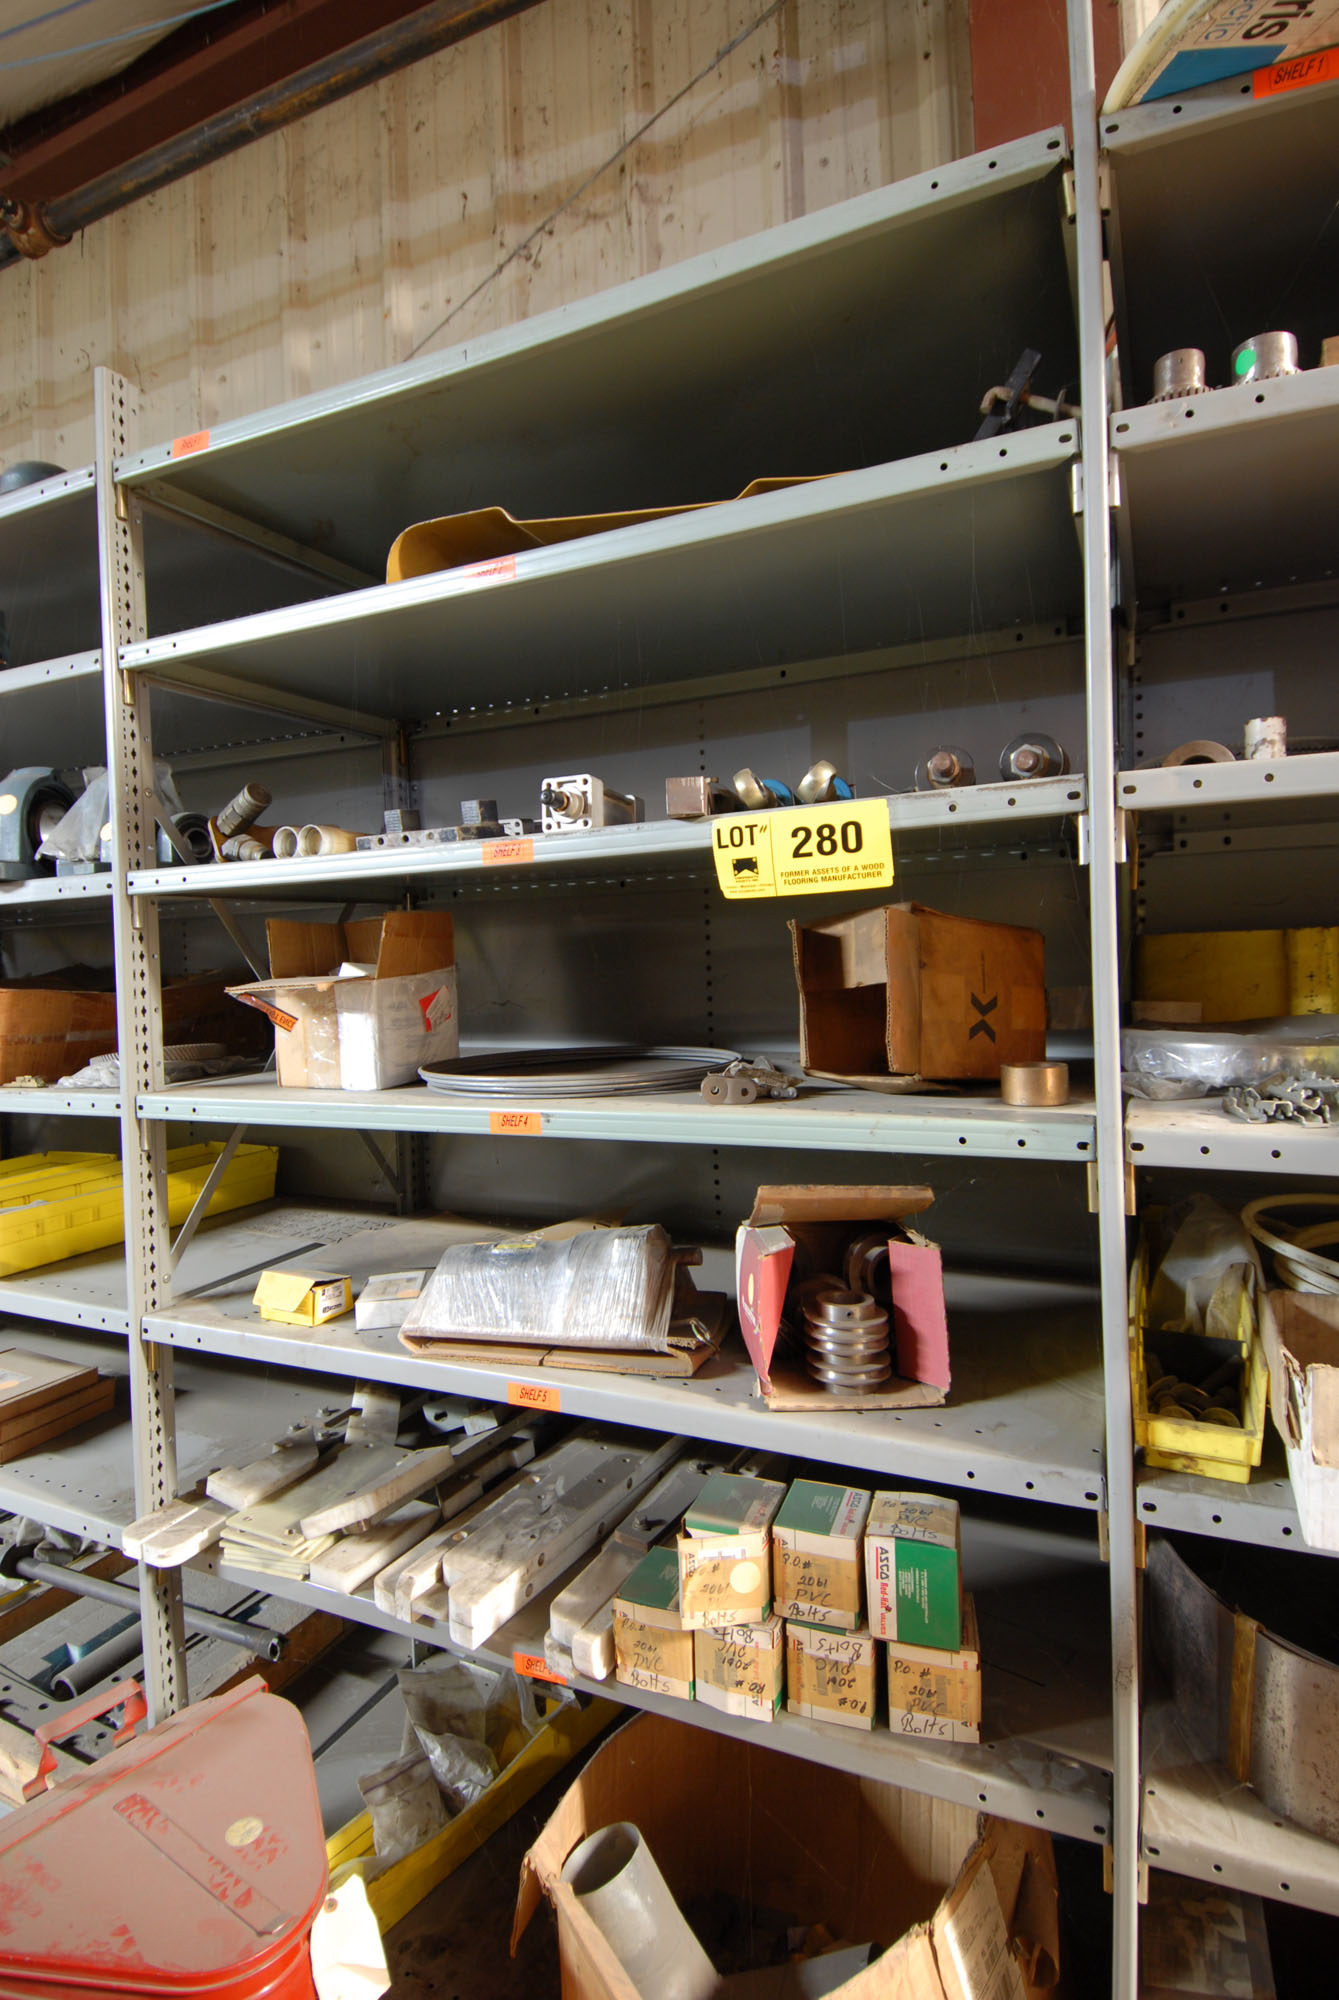 Lot 280 - LOT/ CONTENTS OF SHELF (SPARE PARTS)